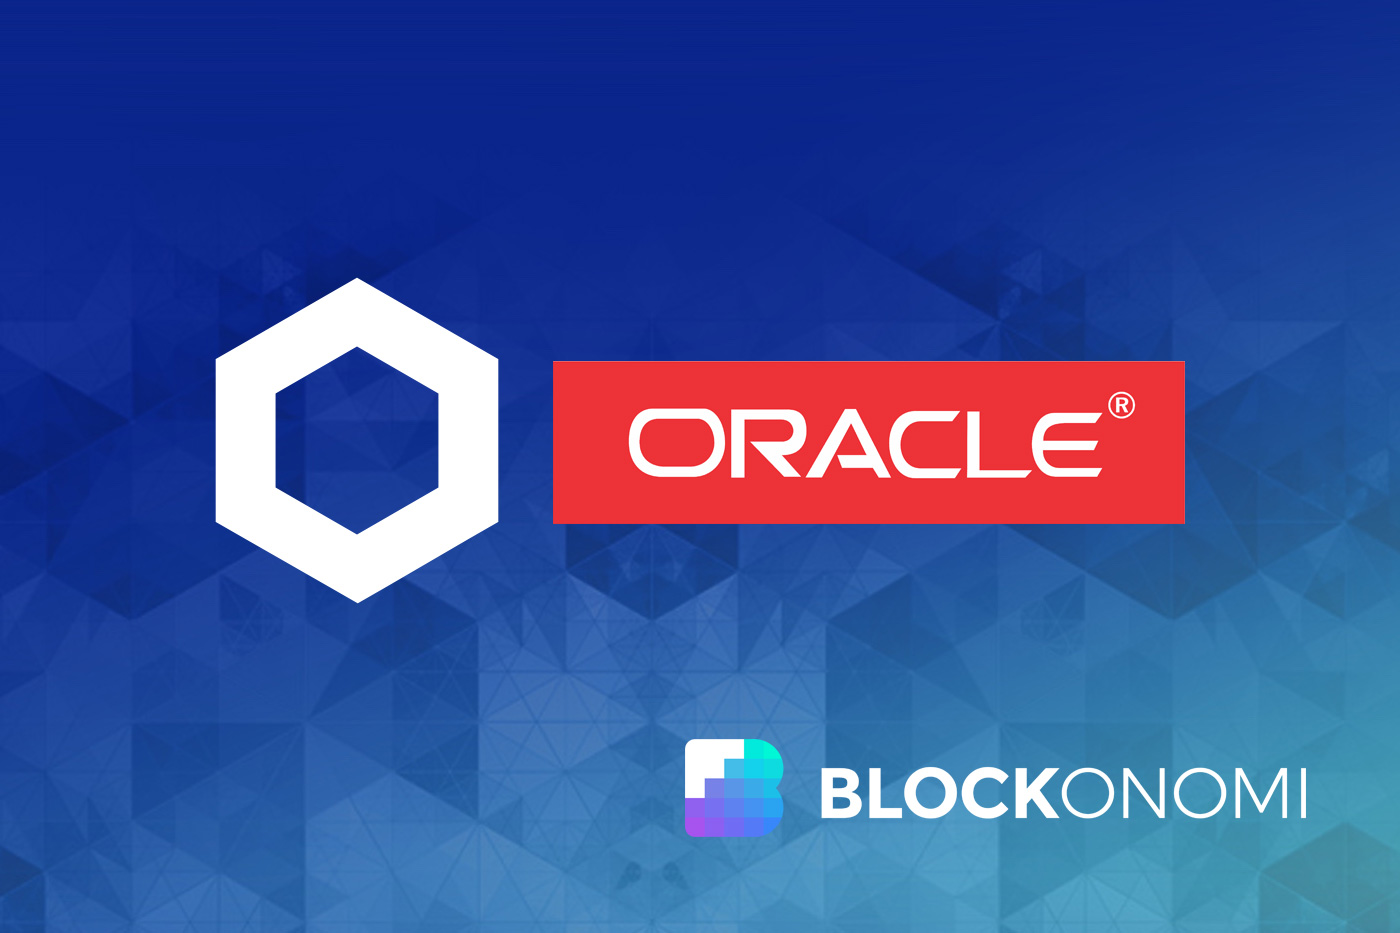 Oracle Chainlink